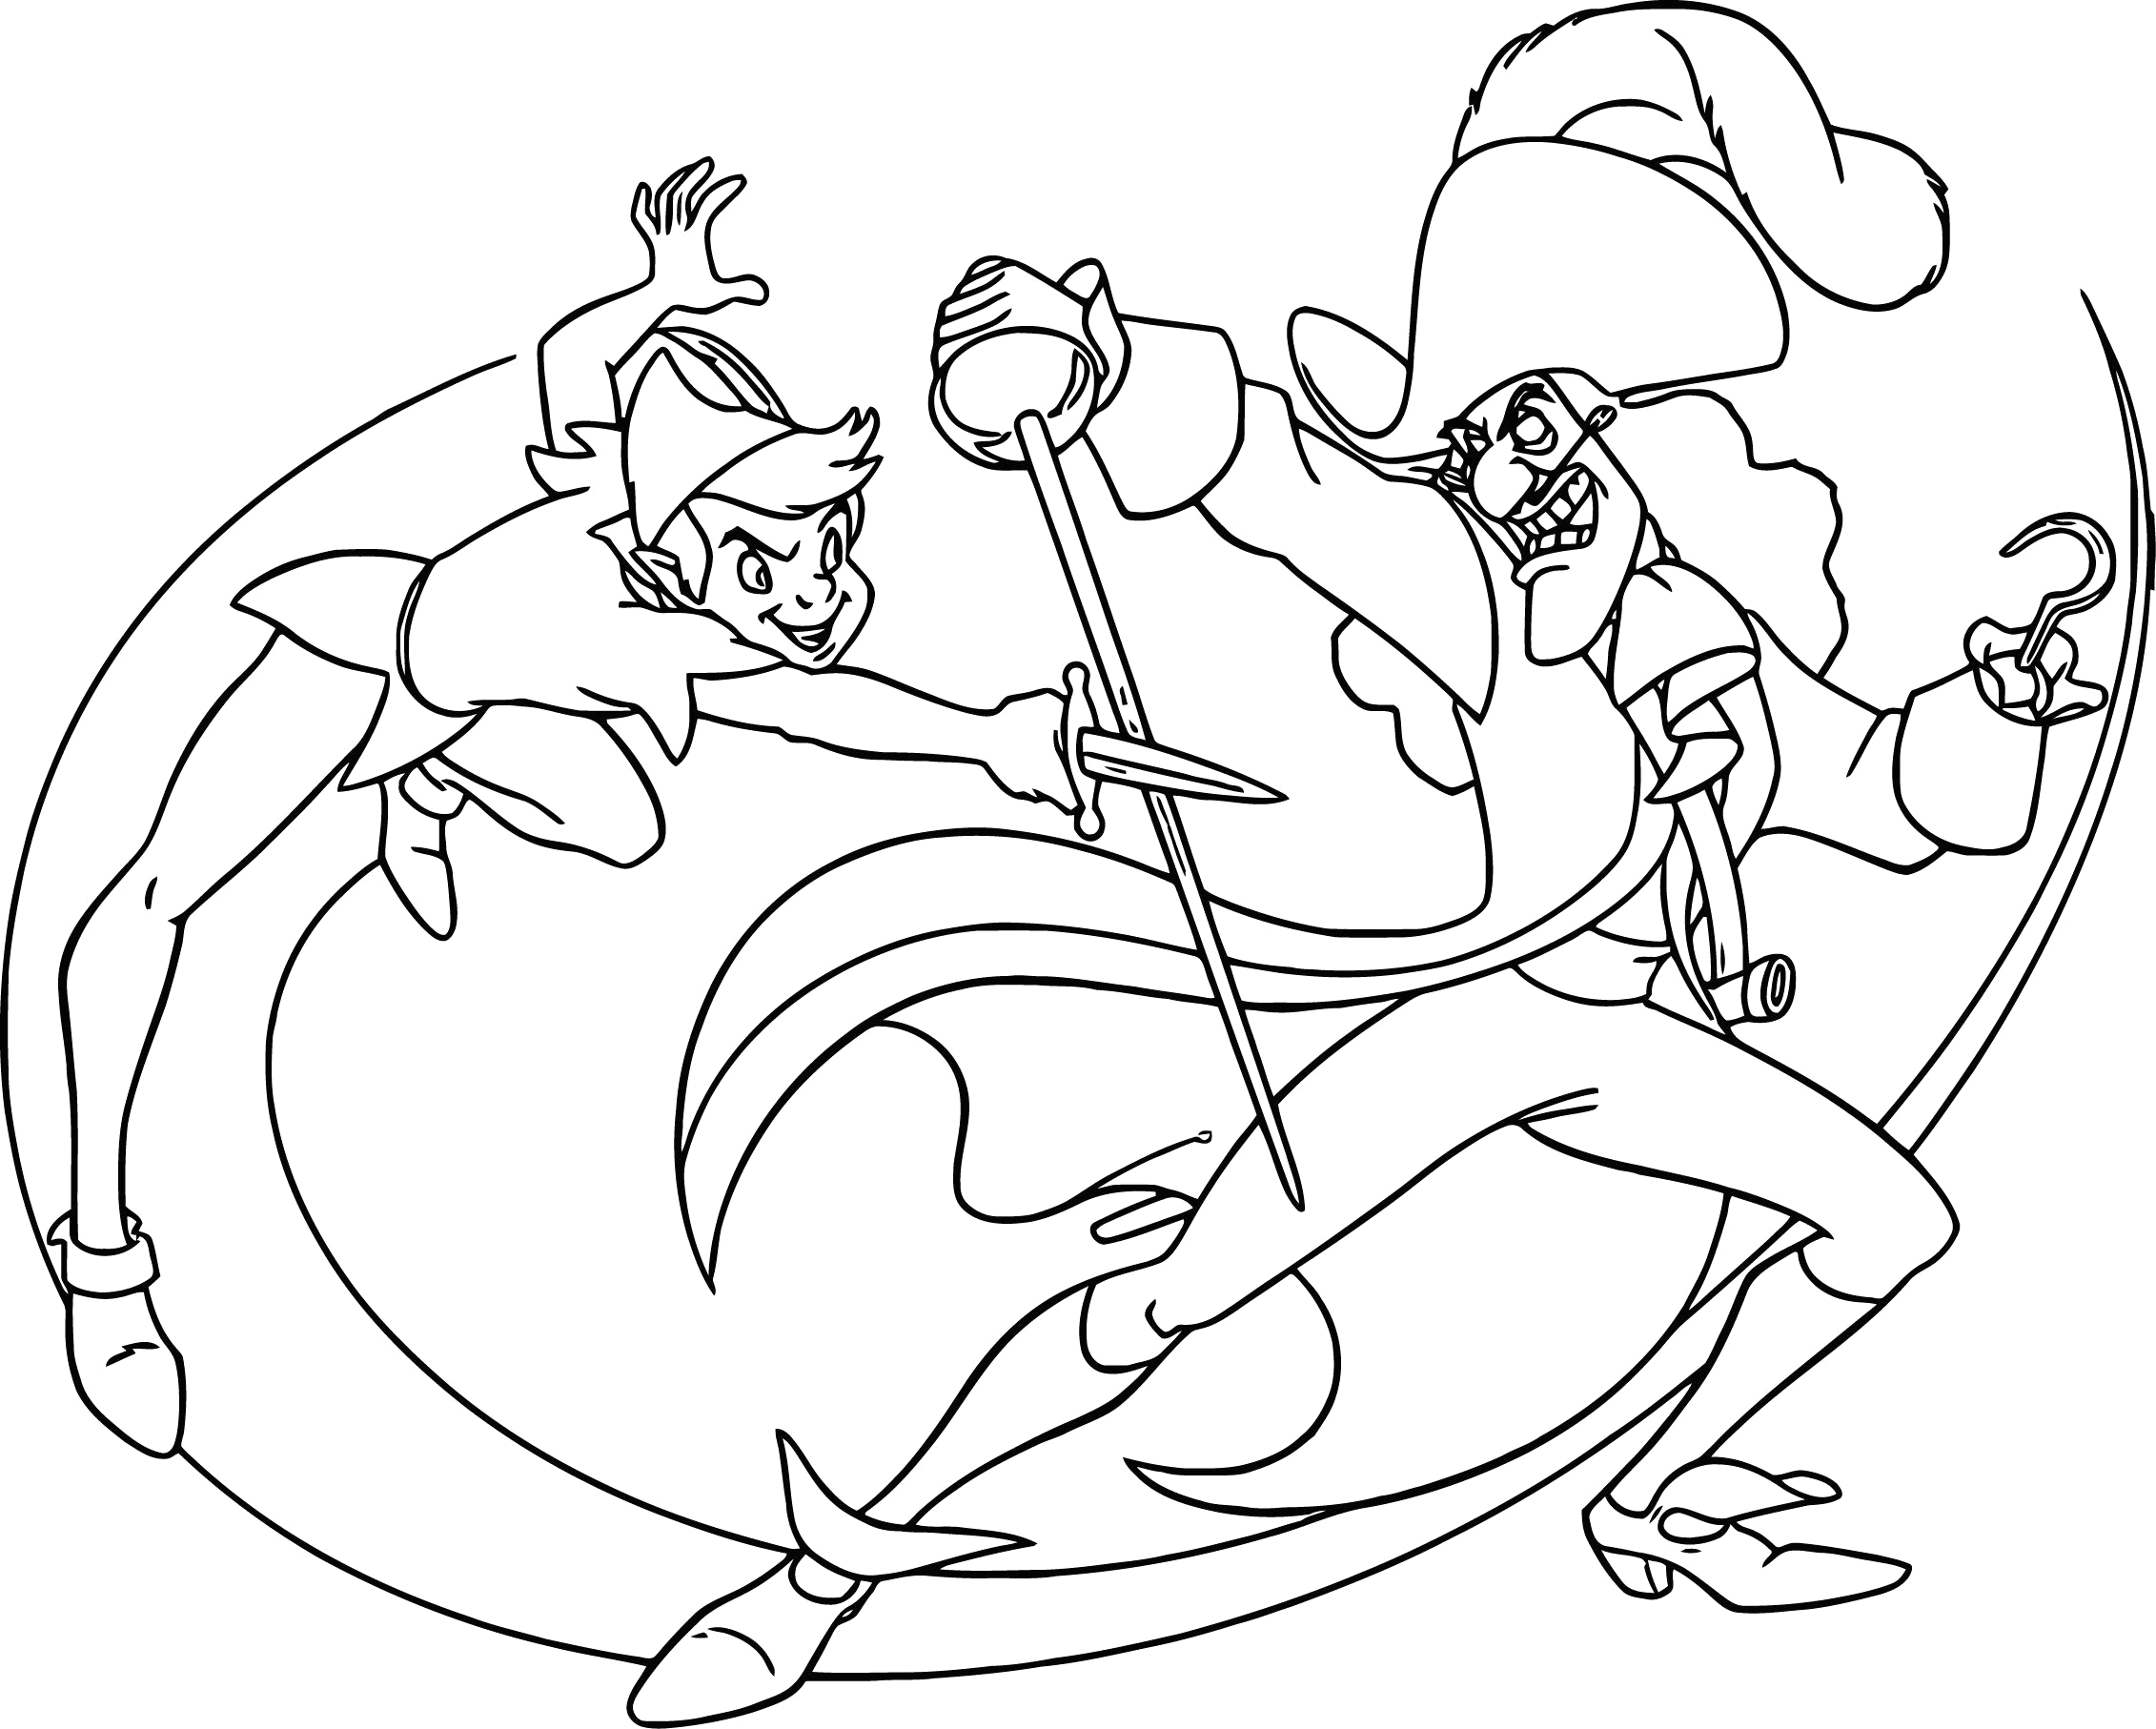 Peter Pan and Captain Hook Coloring Pages Nice Peter Pan and Captain Hook Coloring Pages